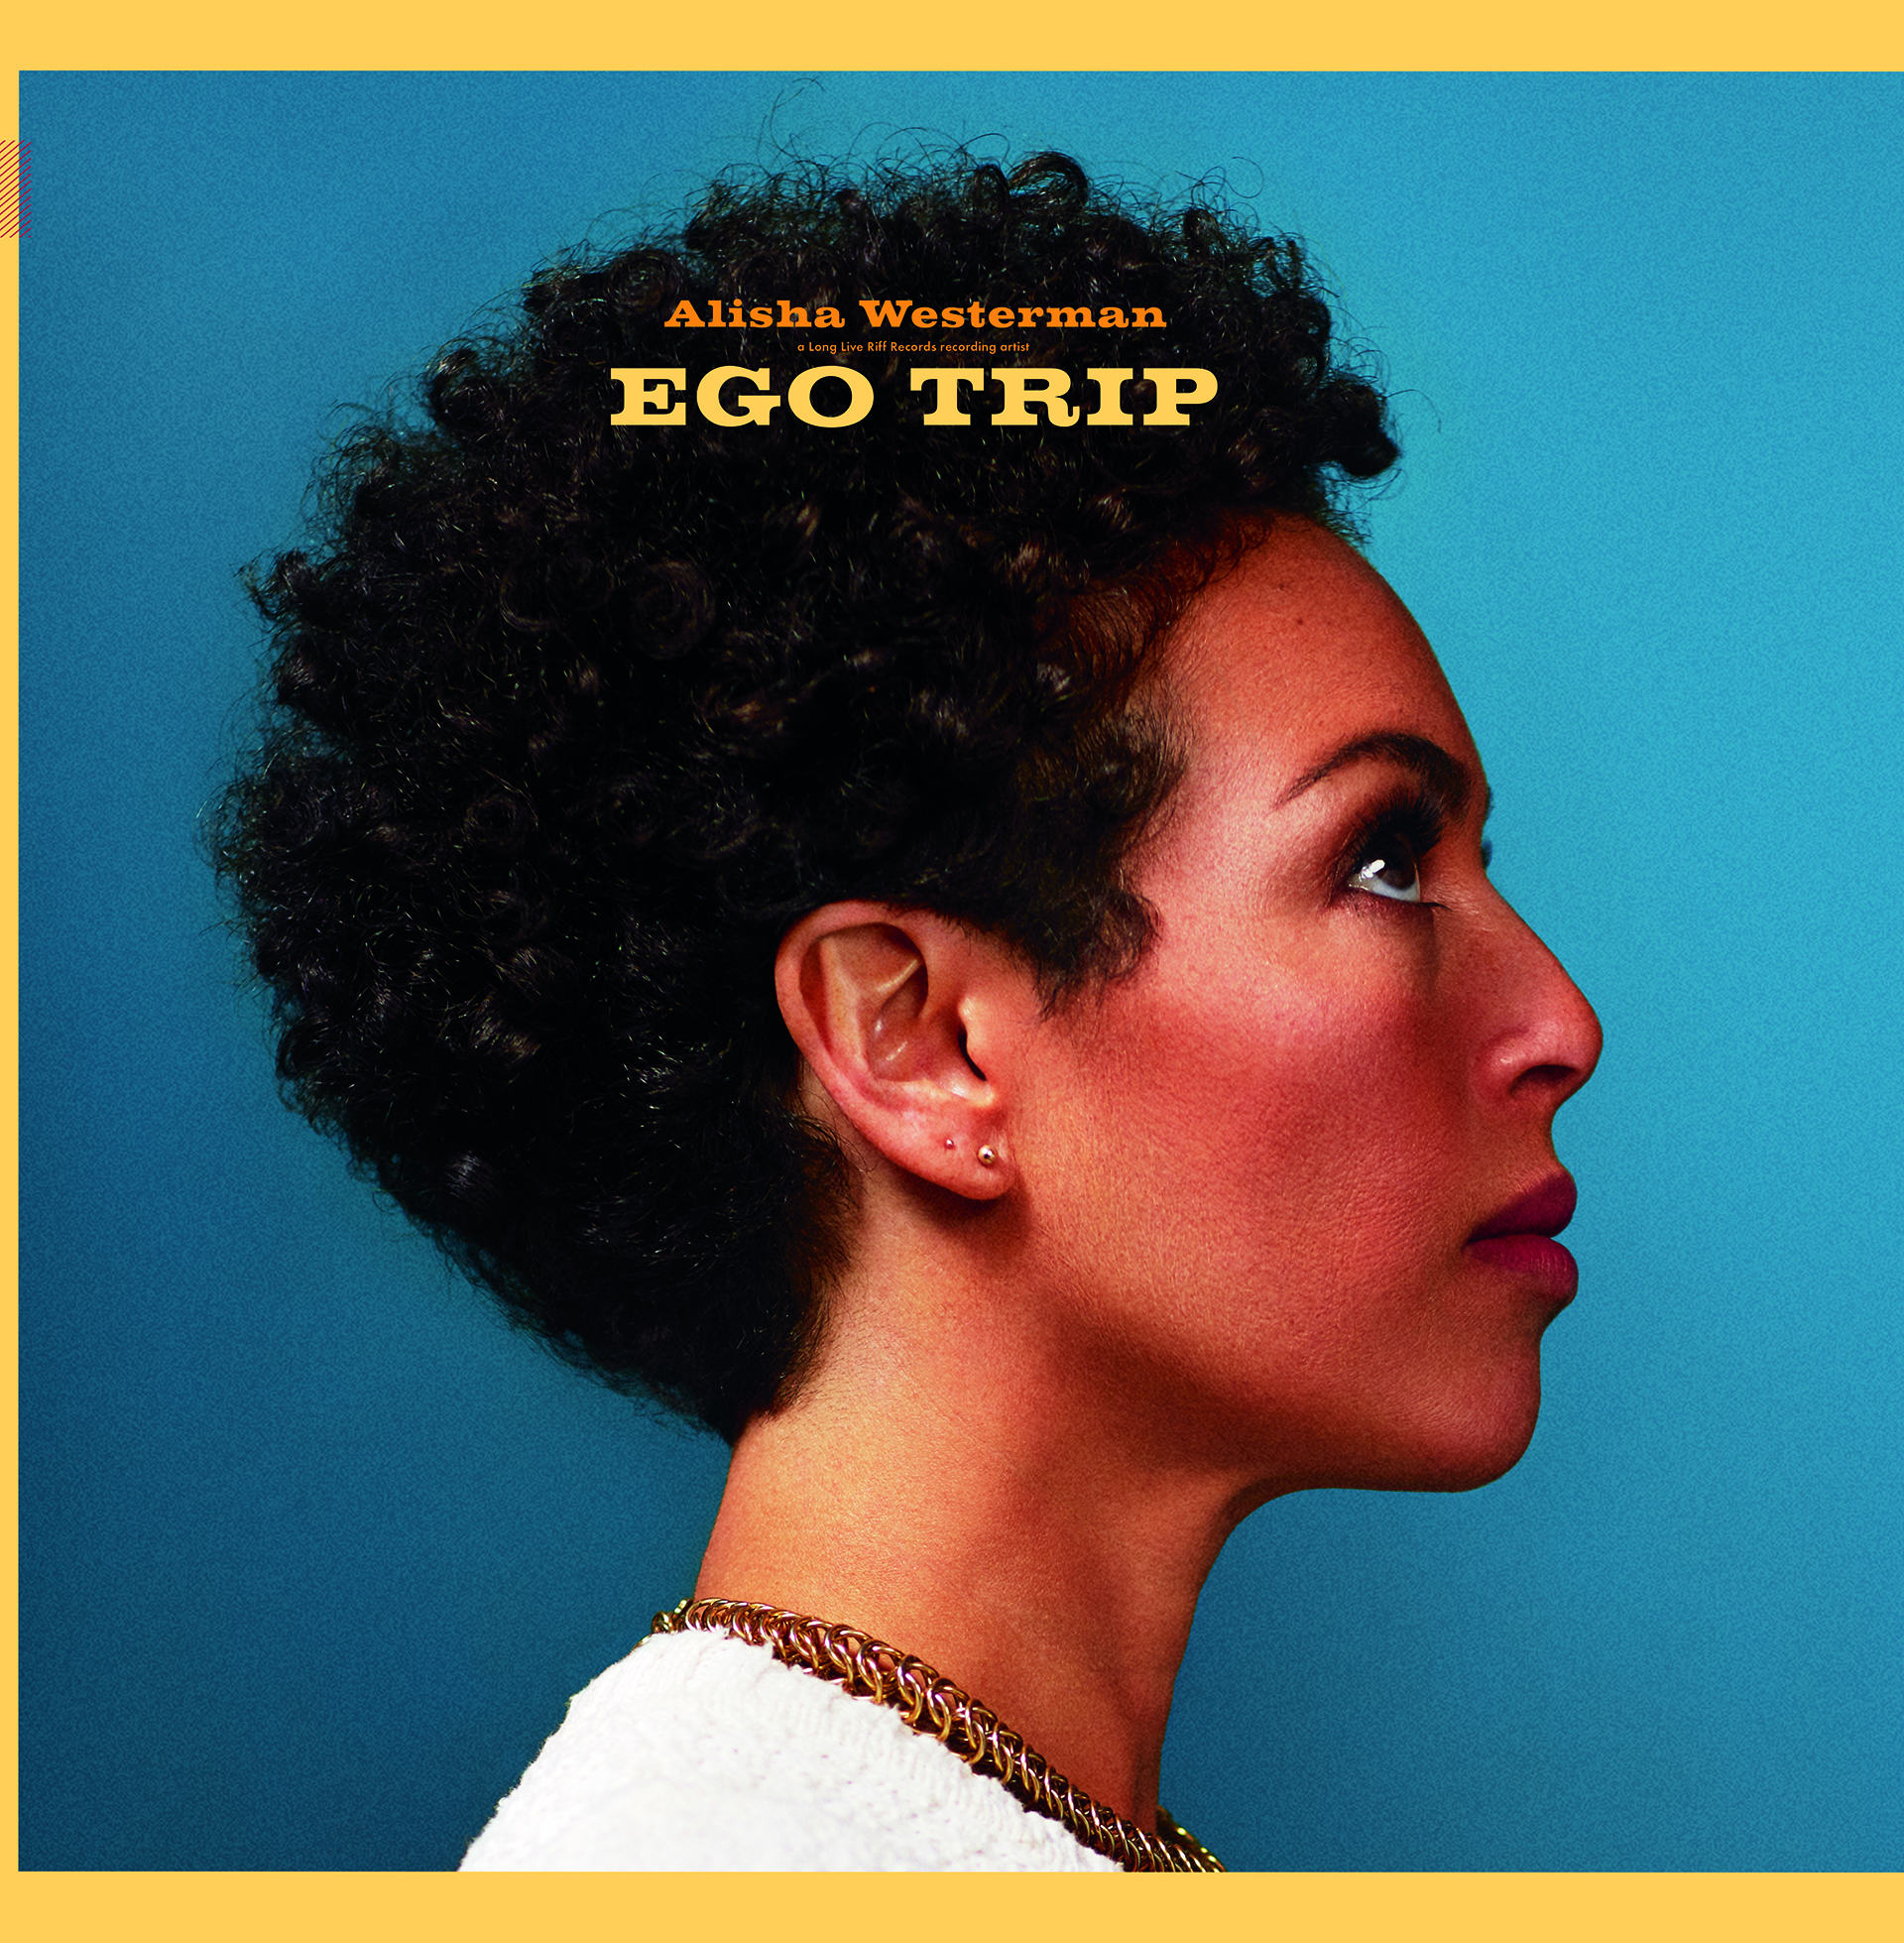 ego-trip-album-cover copy-1920.jpg